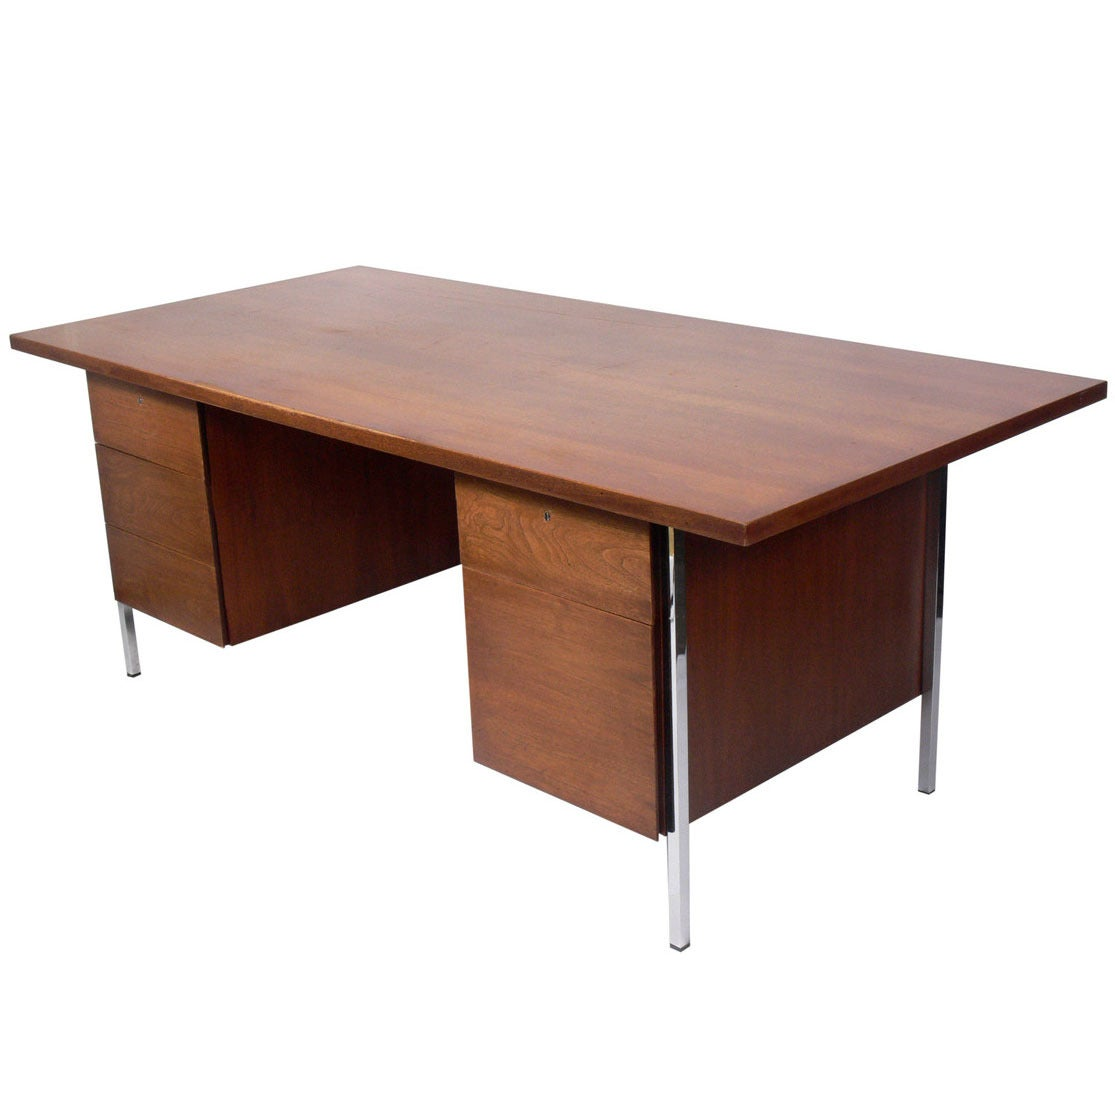 Modern Executive Desk By Florence Knoll At 1stdibs